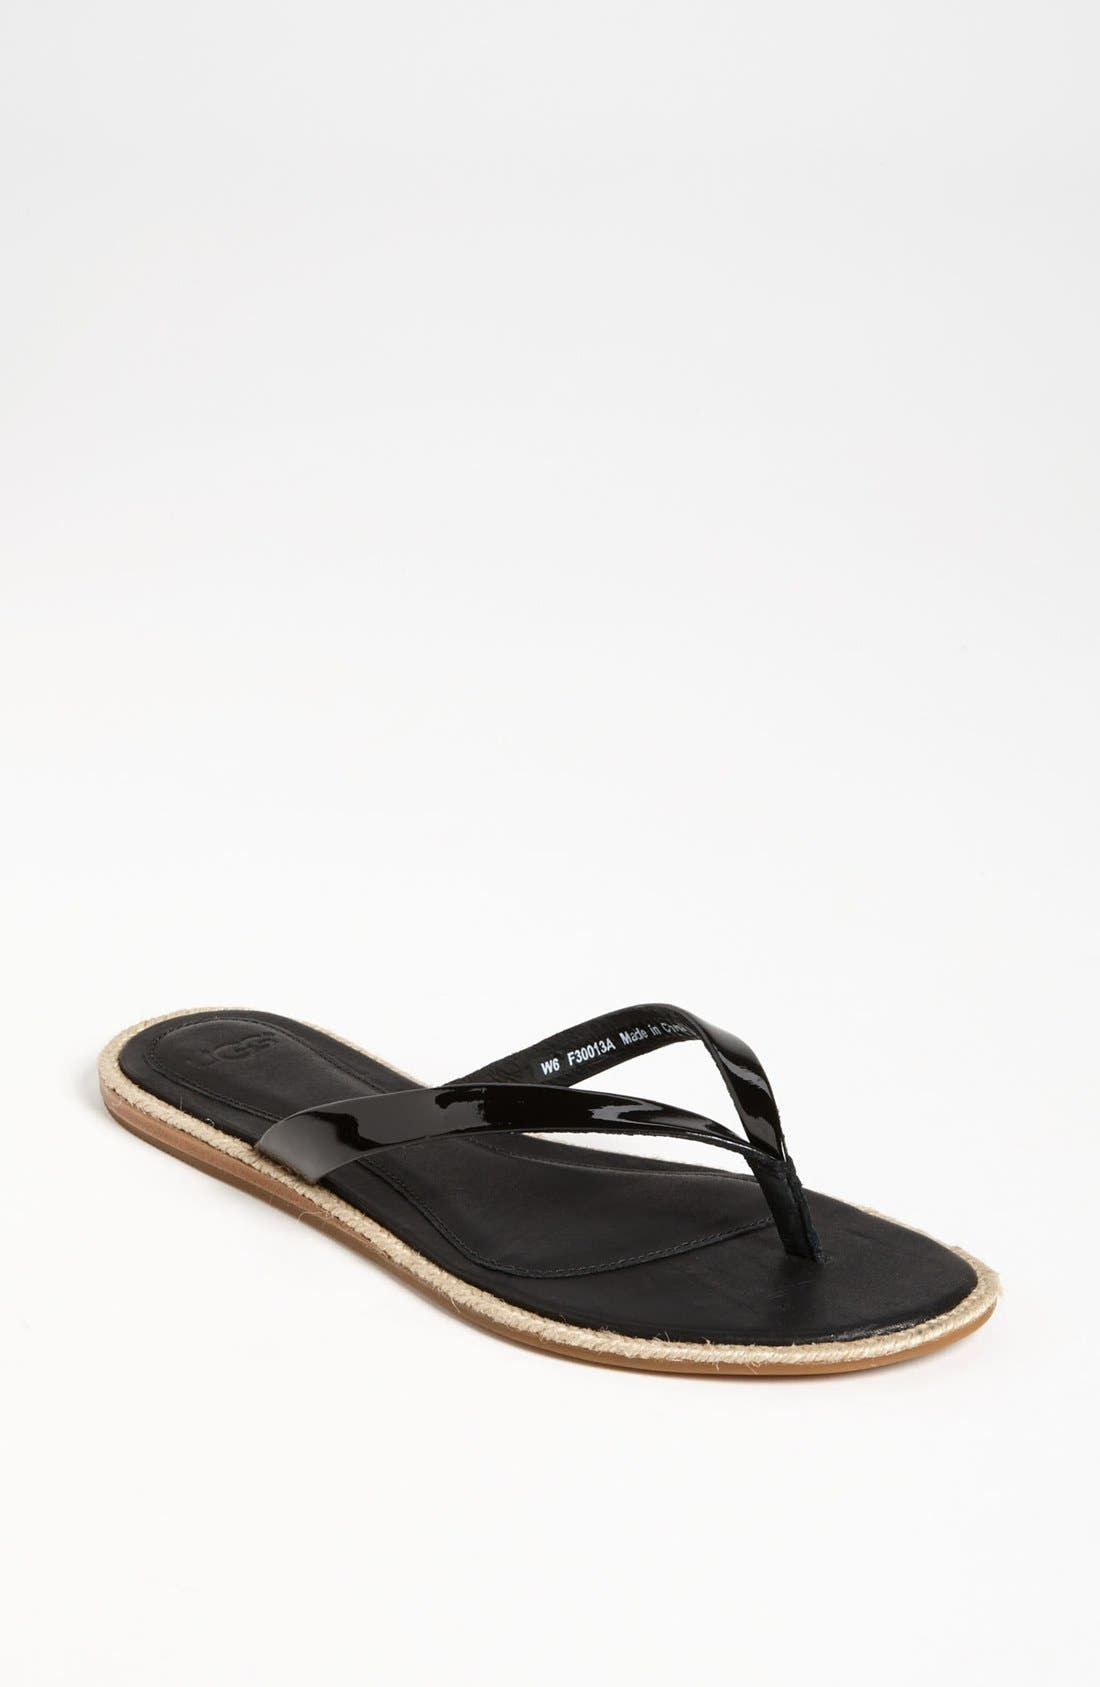 Alternate Image 1 Selected - UGG® Australia 'Allaria' Flip Flop (Women)